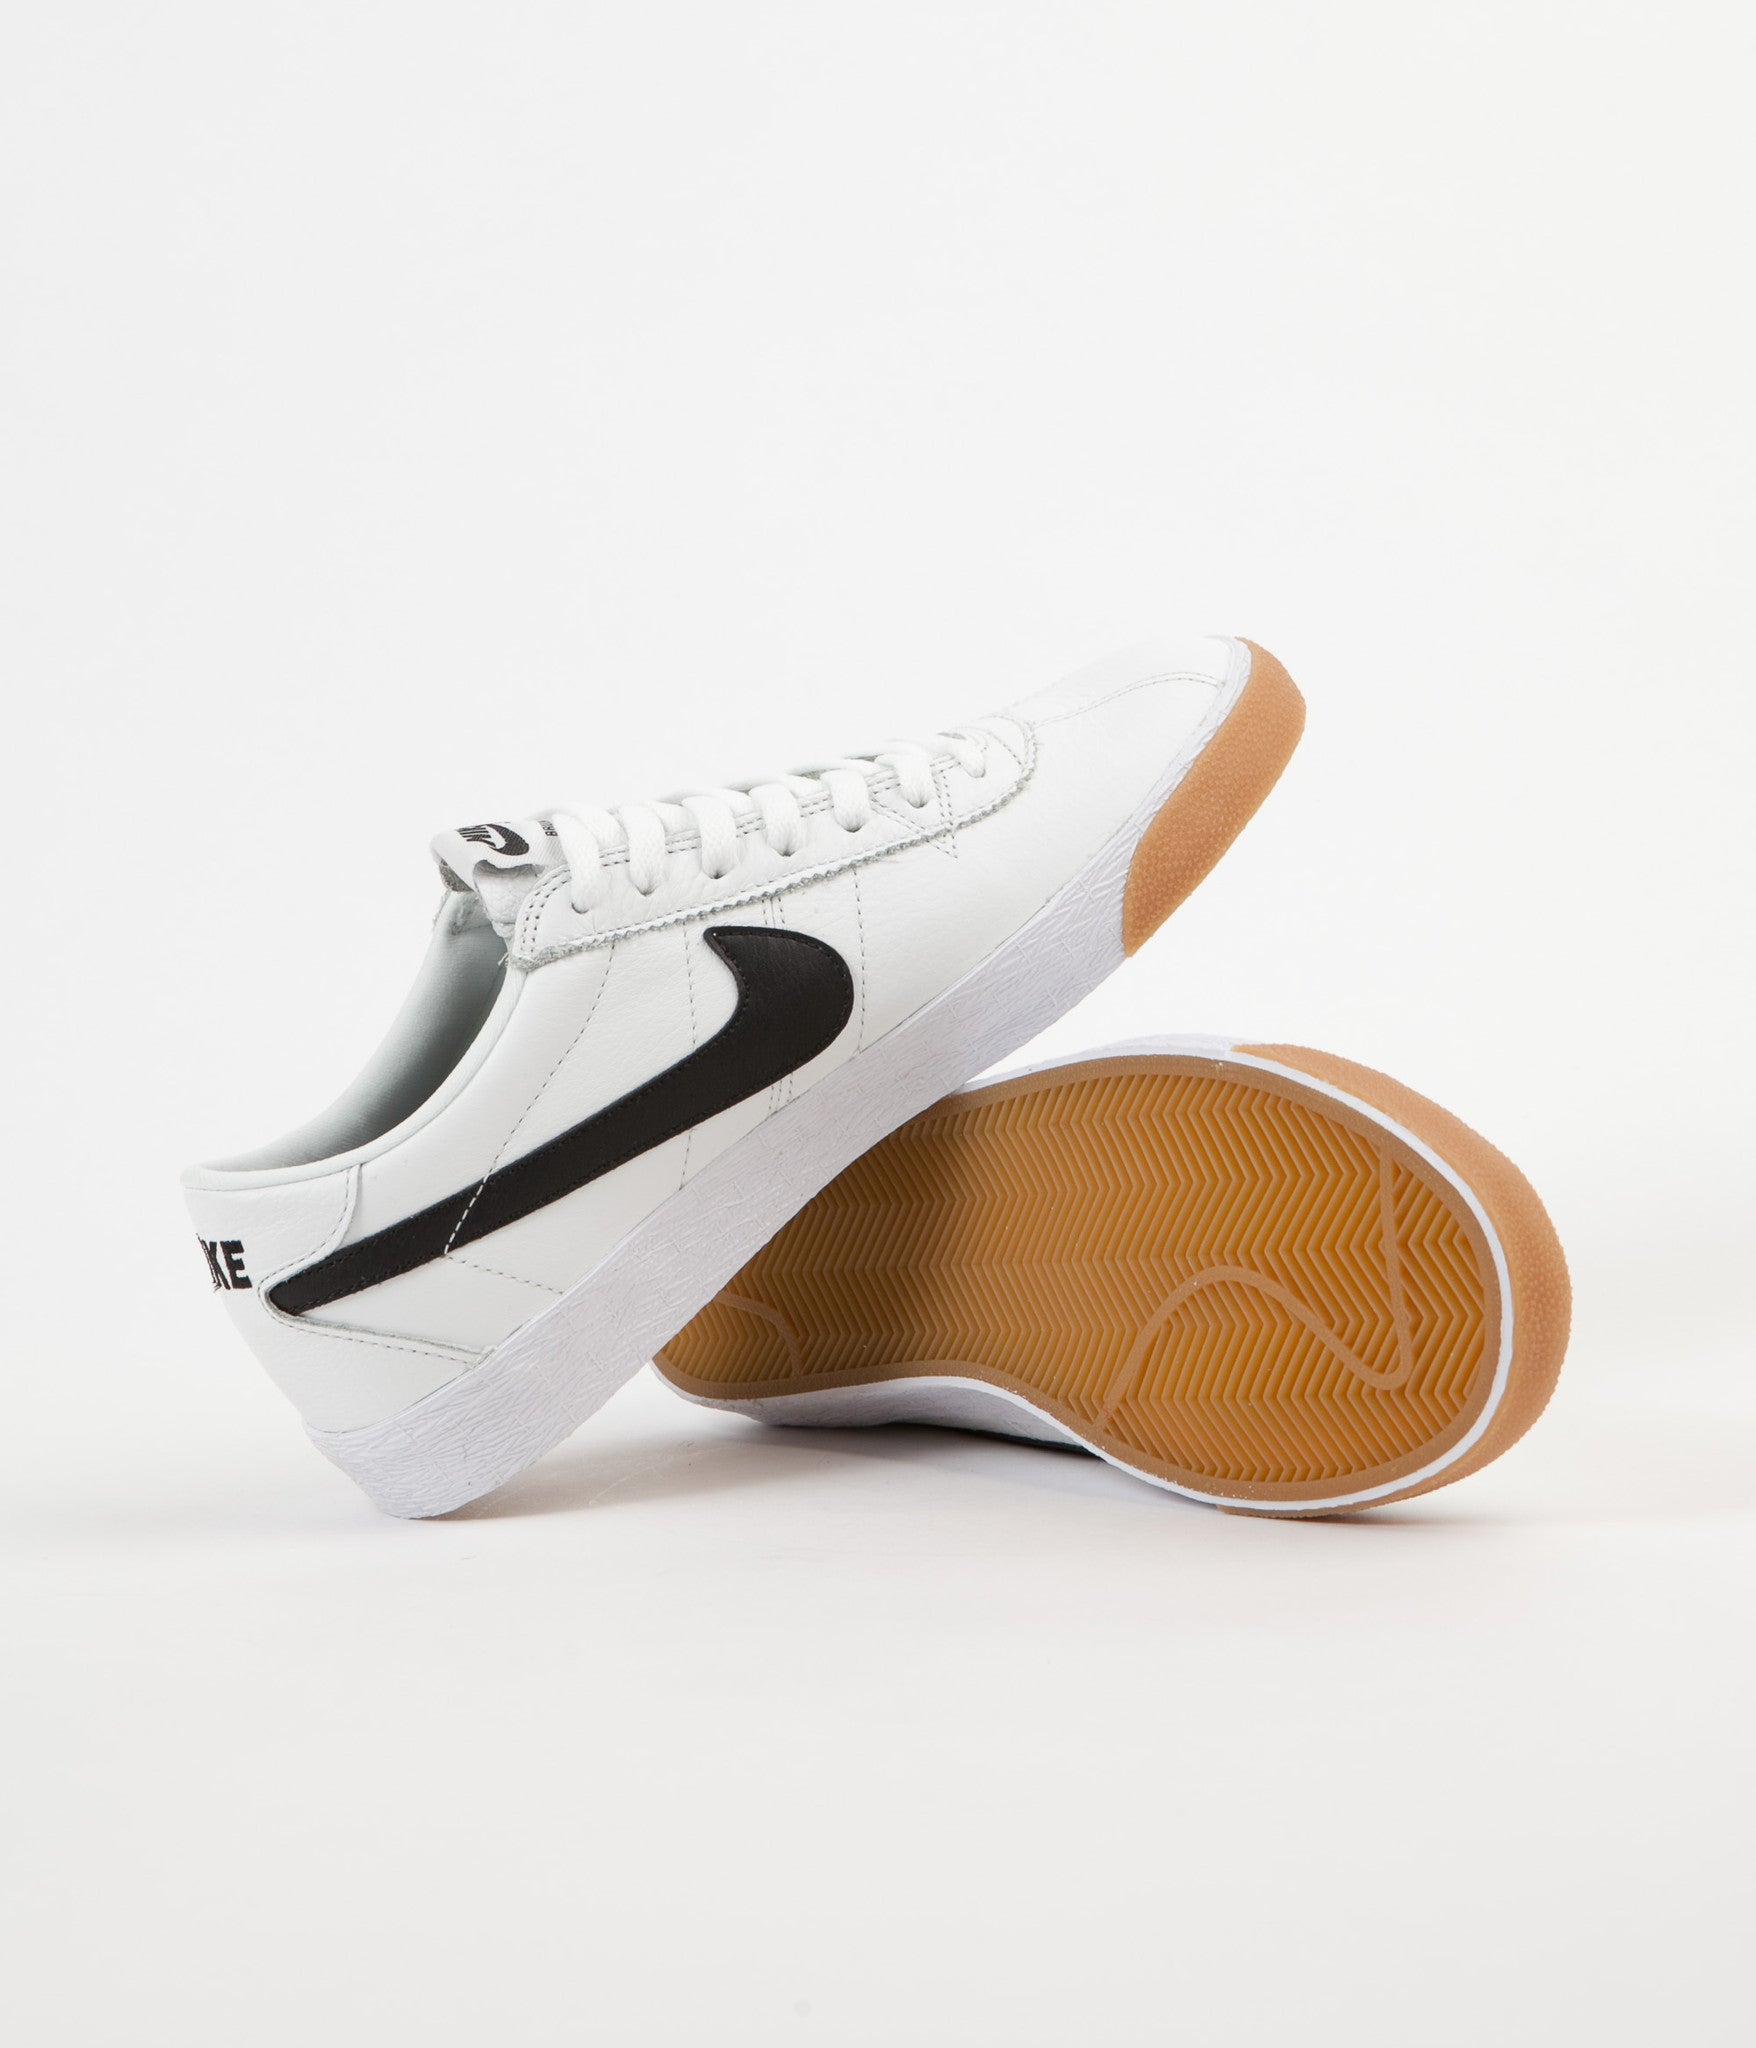 Nike SB Bruin Premium SE Shoes - Summit White / Black - White